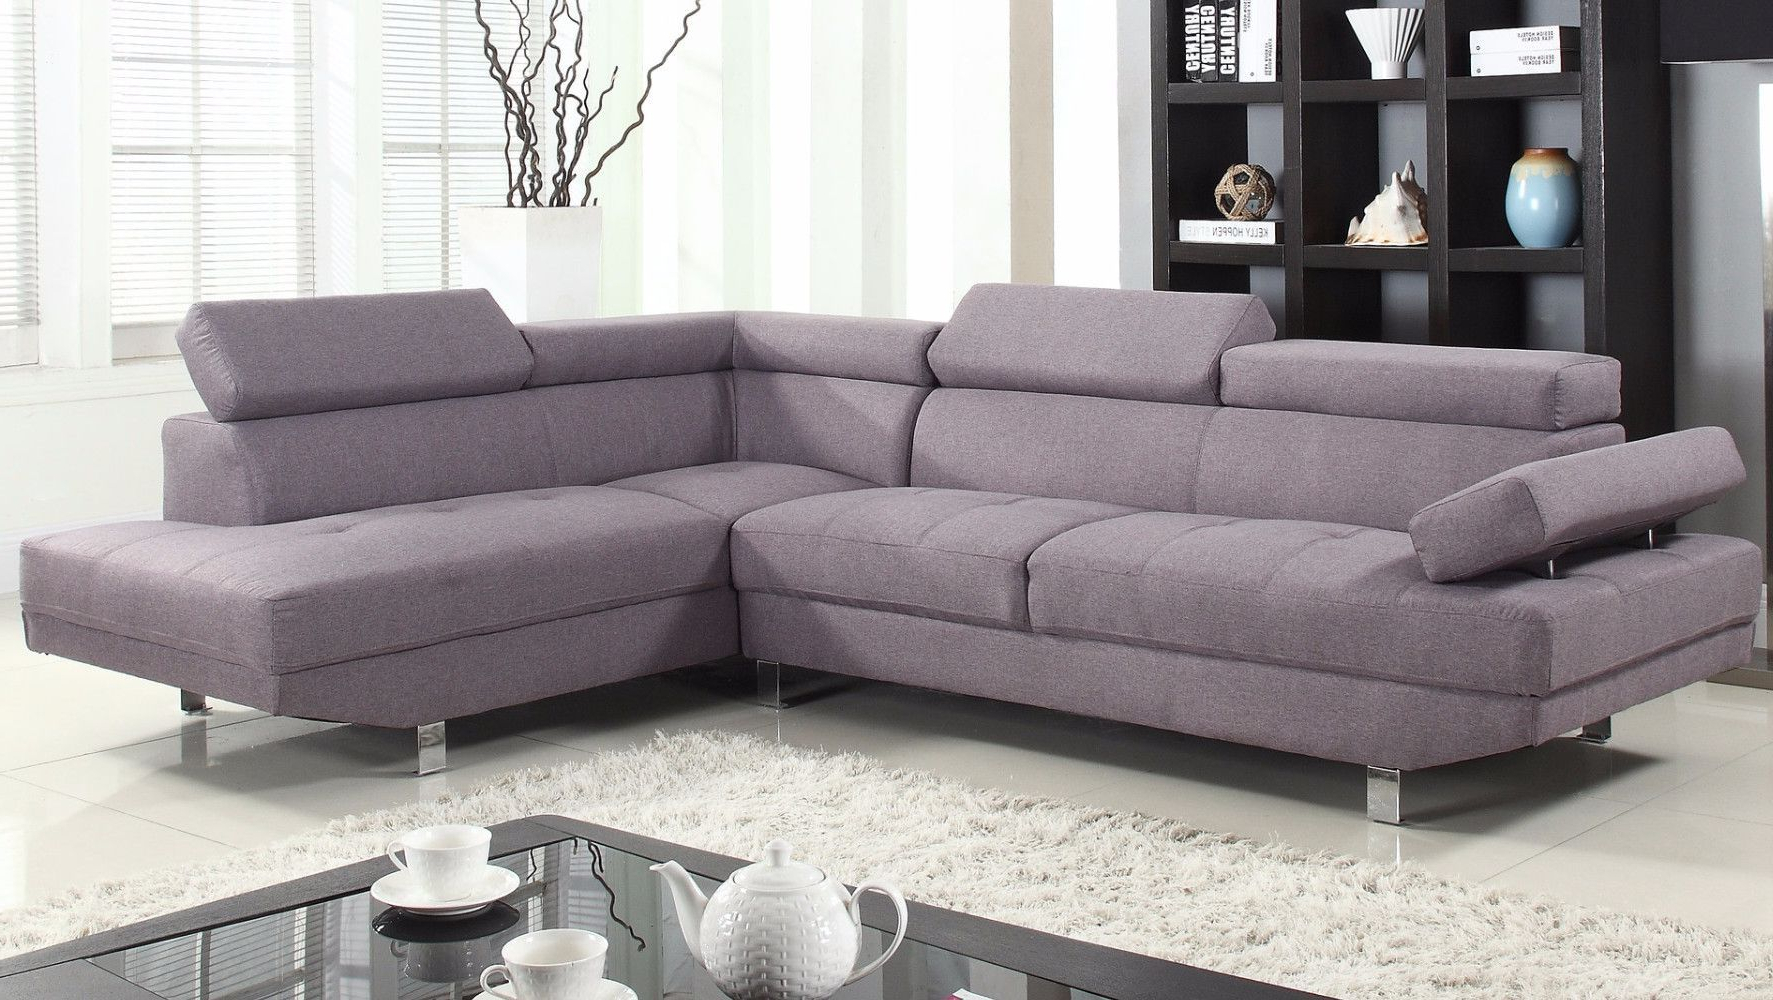 2 Piece Modern Linen Fabric Right Facing Chaise Sectional With Regard To Preferred 2pc Burland Contemporary Chaise Sectional Sofas (View 2 of 20)